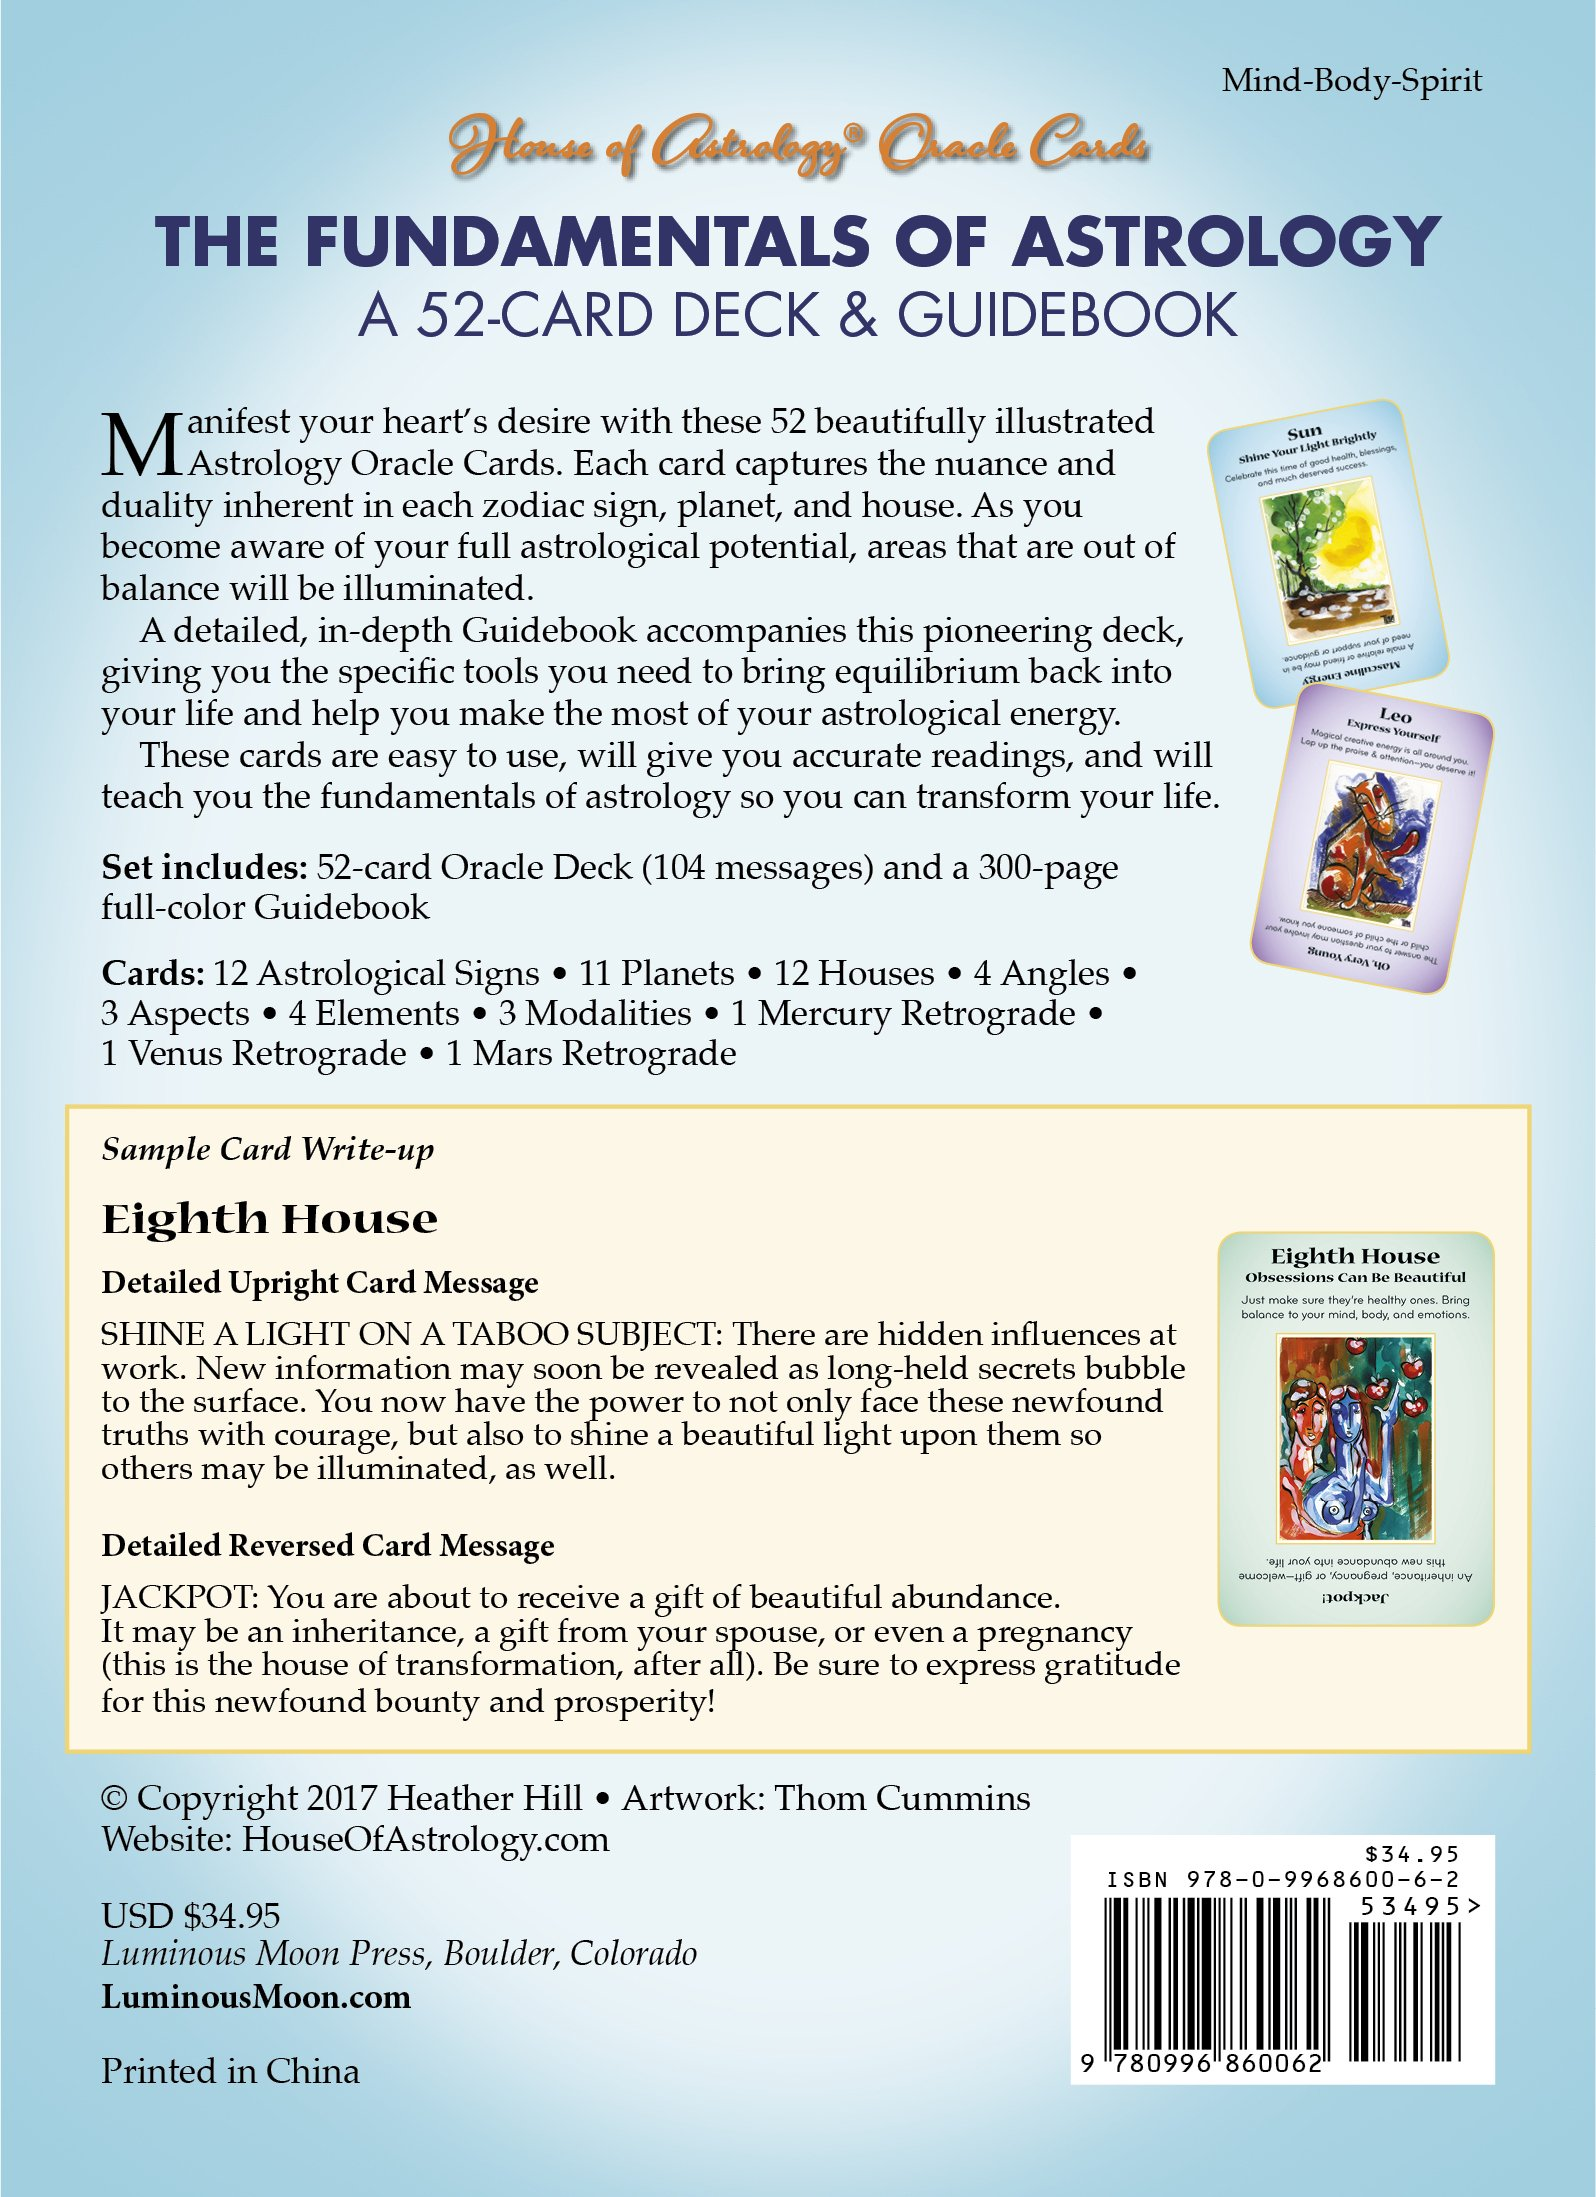 The Fundamentals of Astrology: A 52-Card Deck & Guidebook: Heather